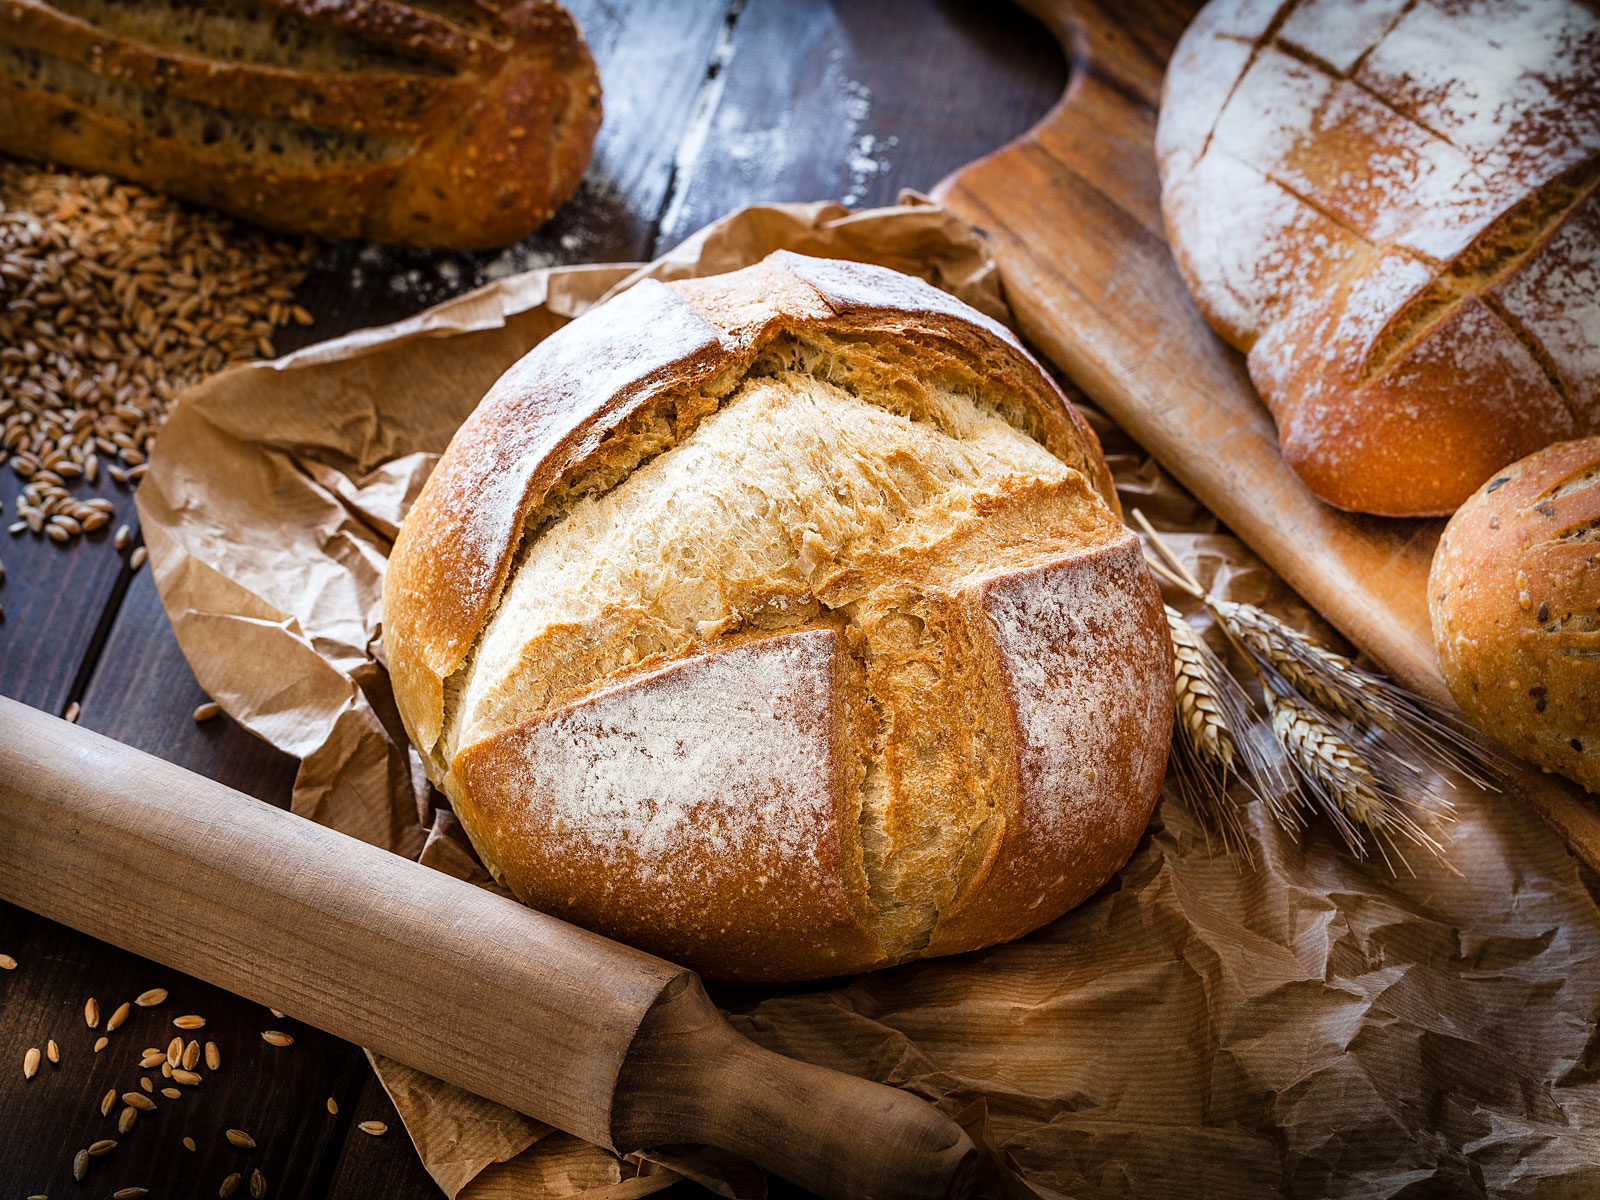 bread-cookbooks-ecomm-FT-BLOG0319.jpg